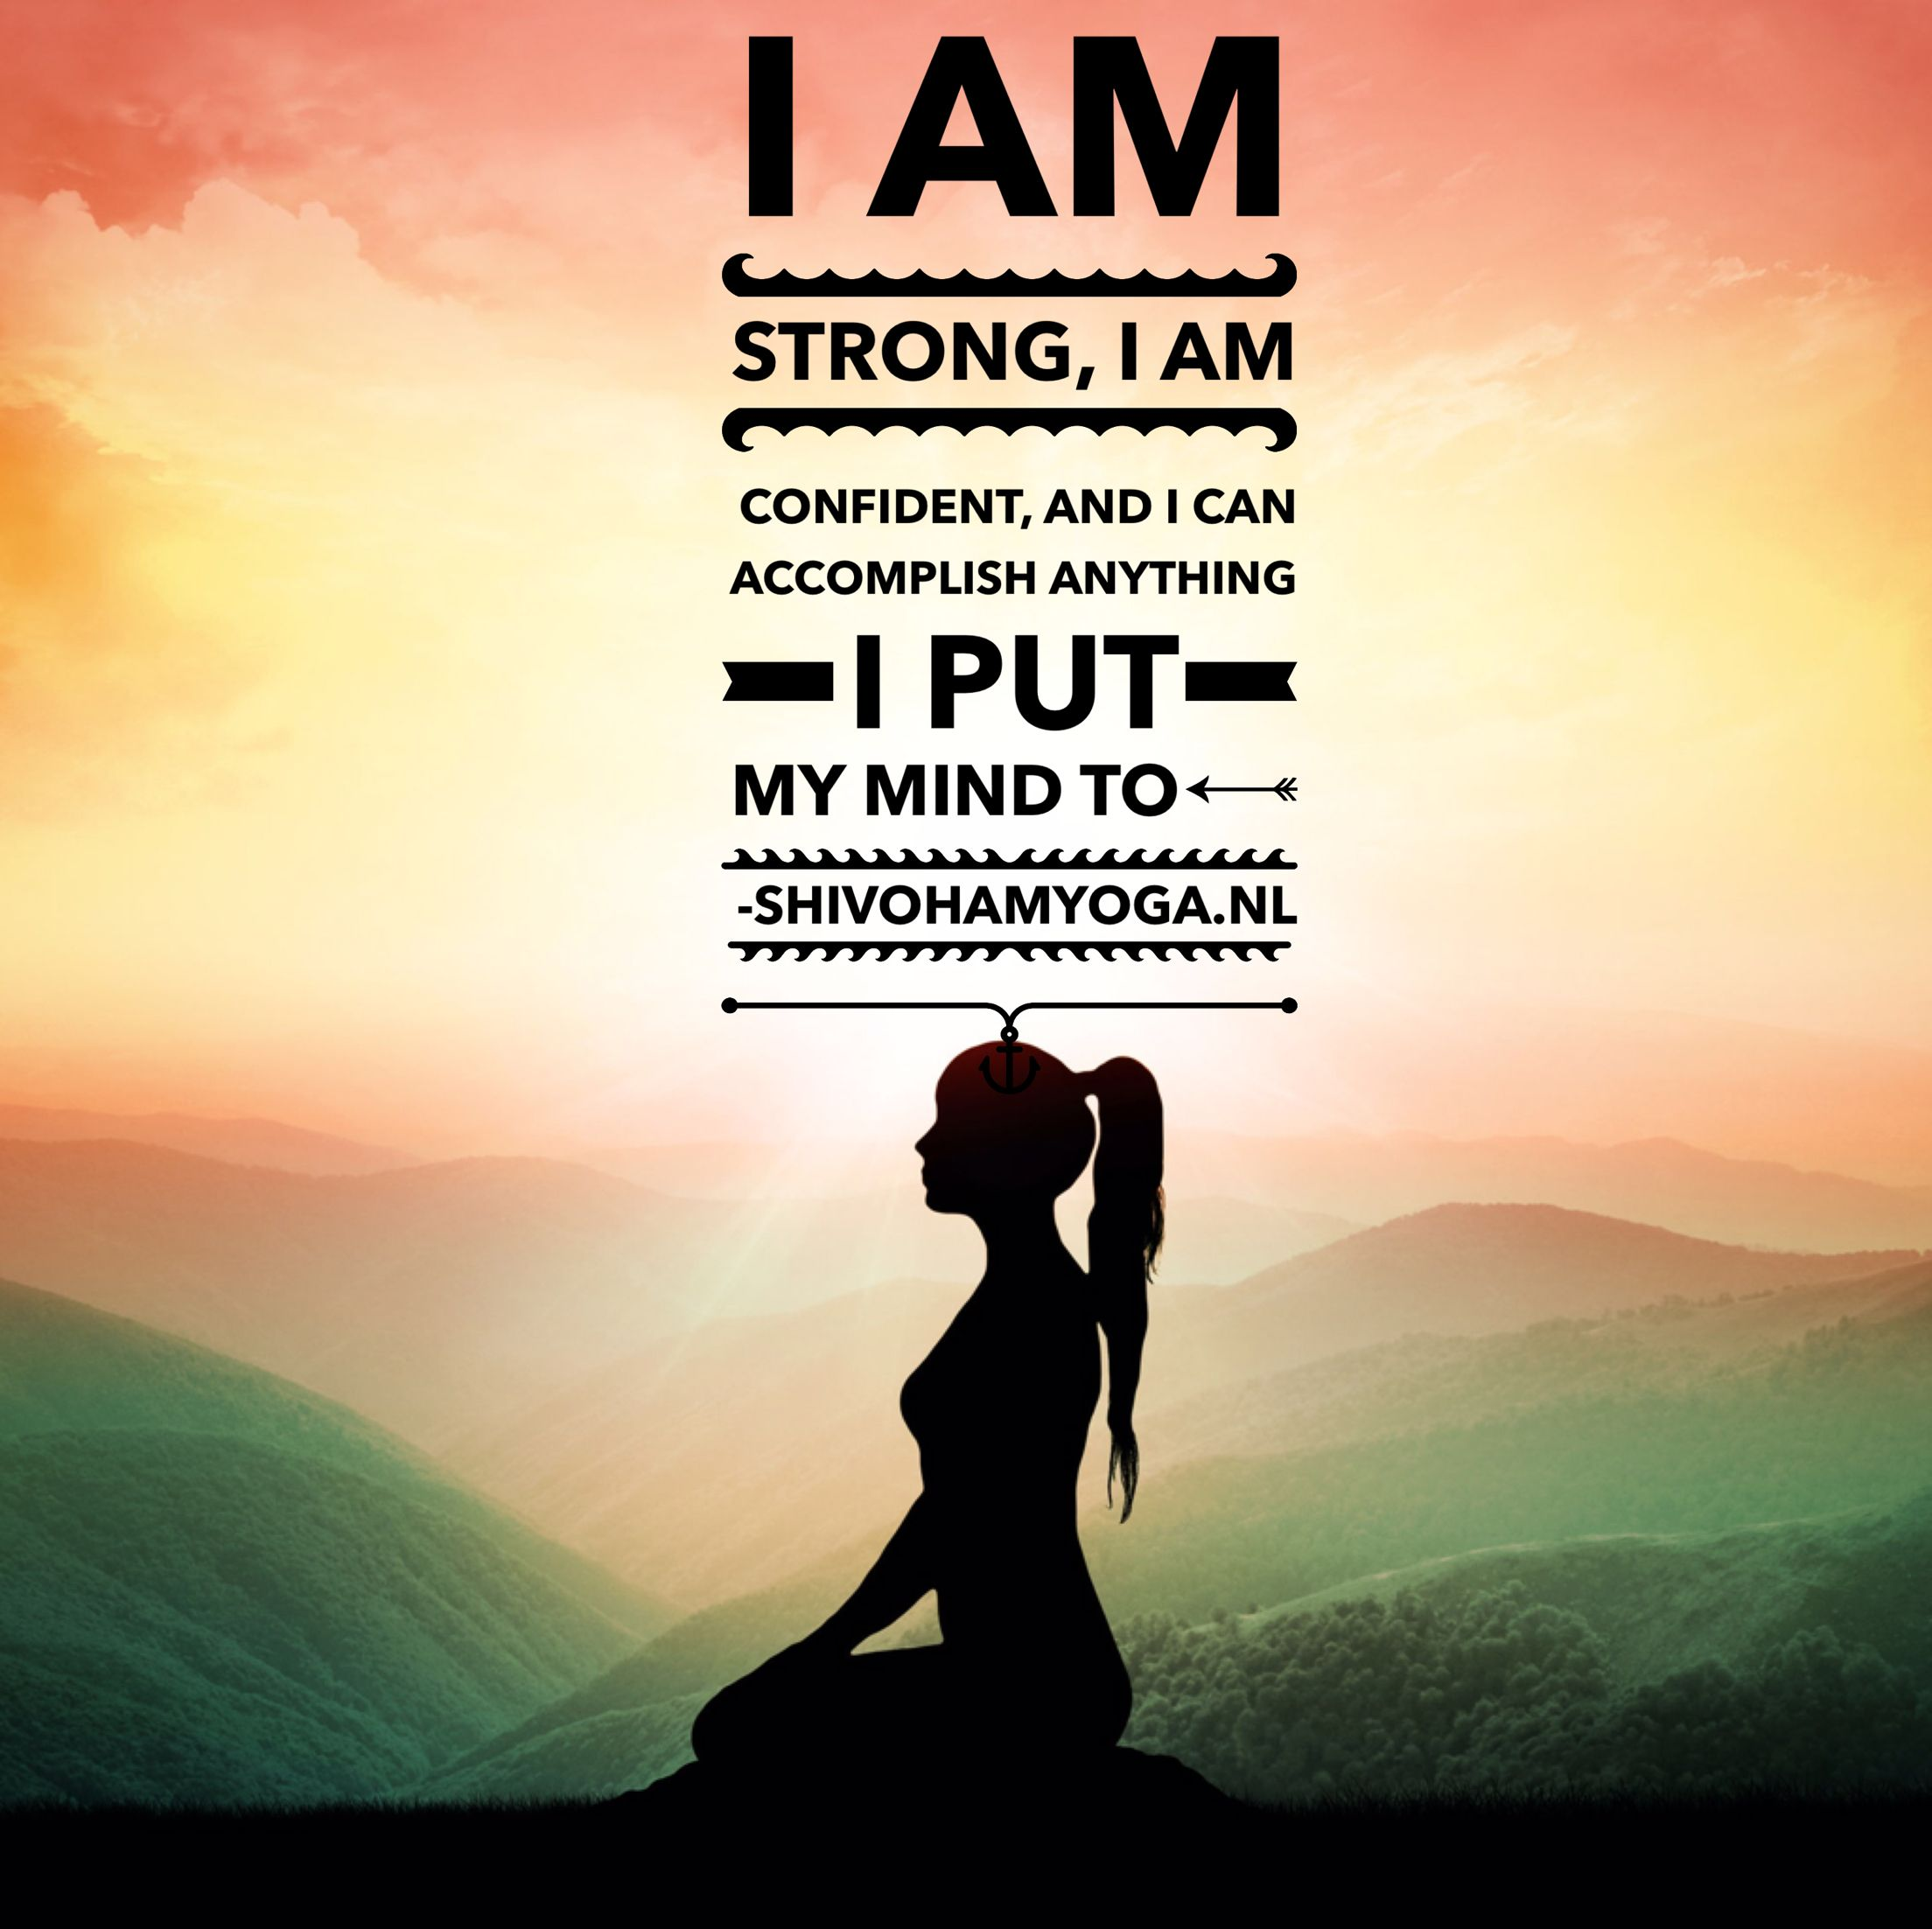 I am strong, I am confident, and I can anything